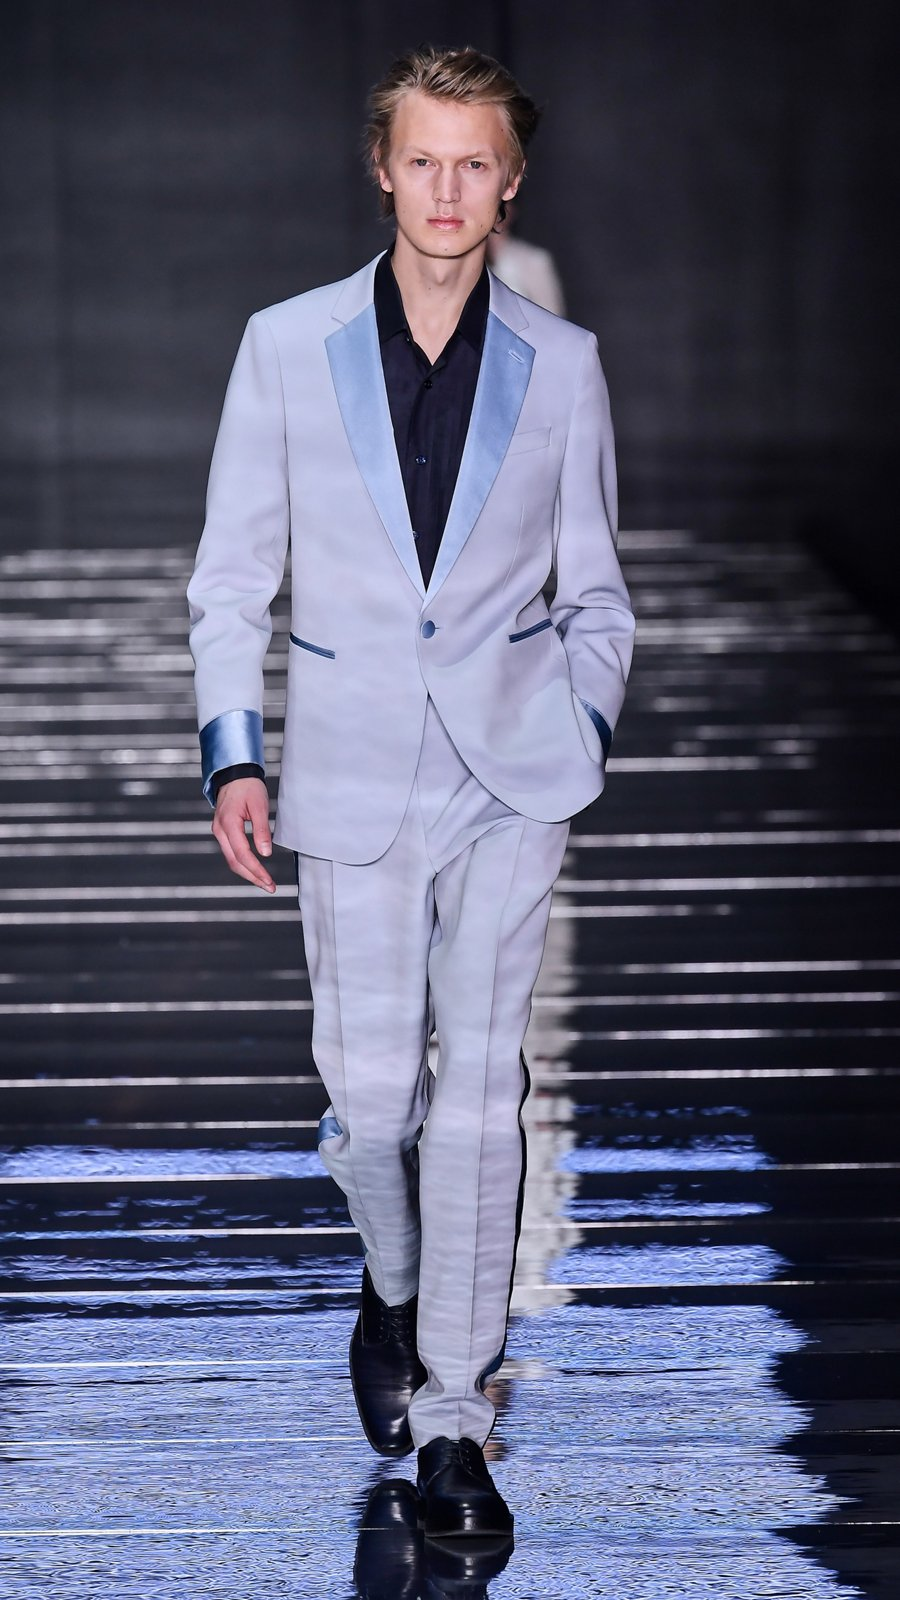 a3f7889a BOSS Fashion Show | Menswear & Womenswear | HUGO BOSS